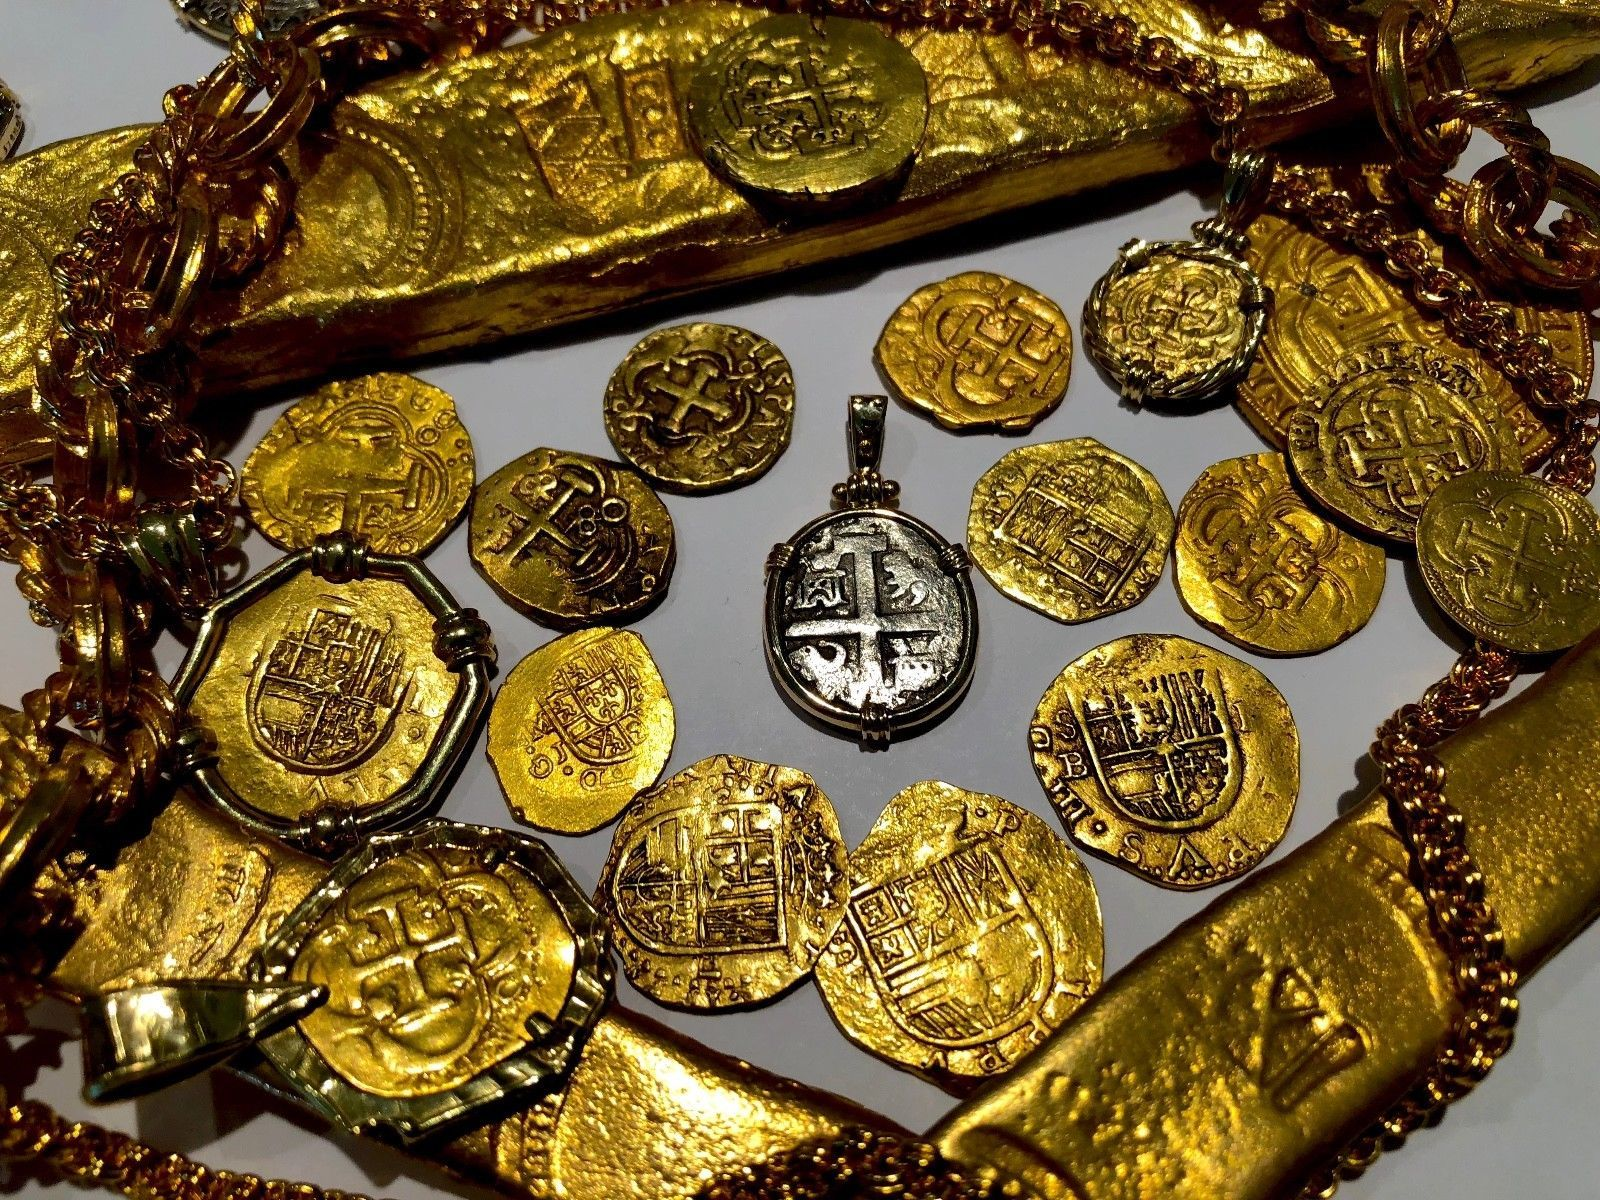 "PERU 2 REALES 1739 ""PRINCESS LOUISA 1743 SHIPWRECK"" 14KT BEZEL PIRATE GOLD COINS"